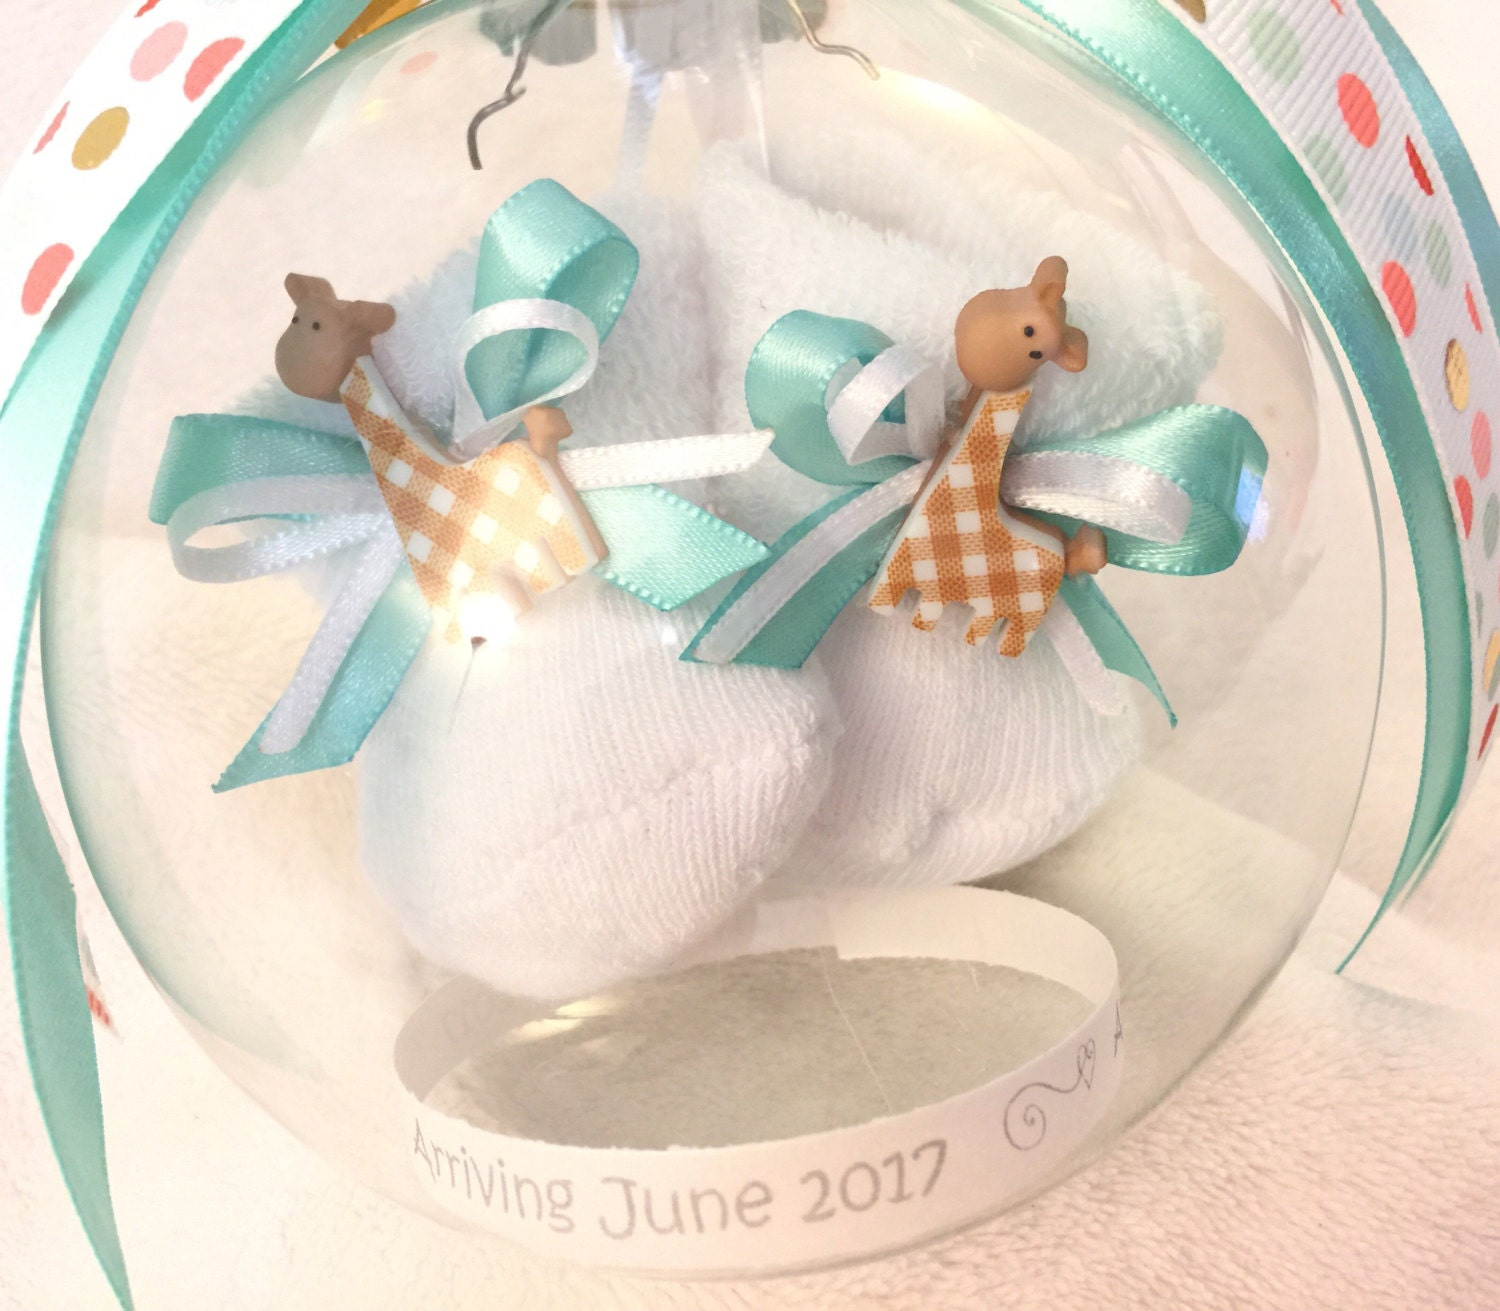 Personalized Pregnancy Announcement  Pregnancy Announcement Keepsake Ornament With Floating